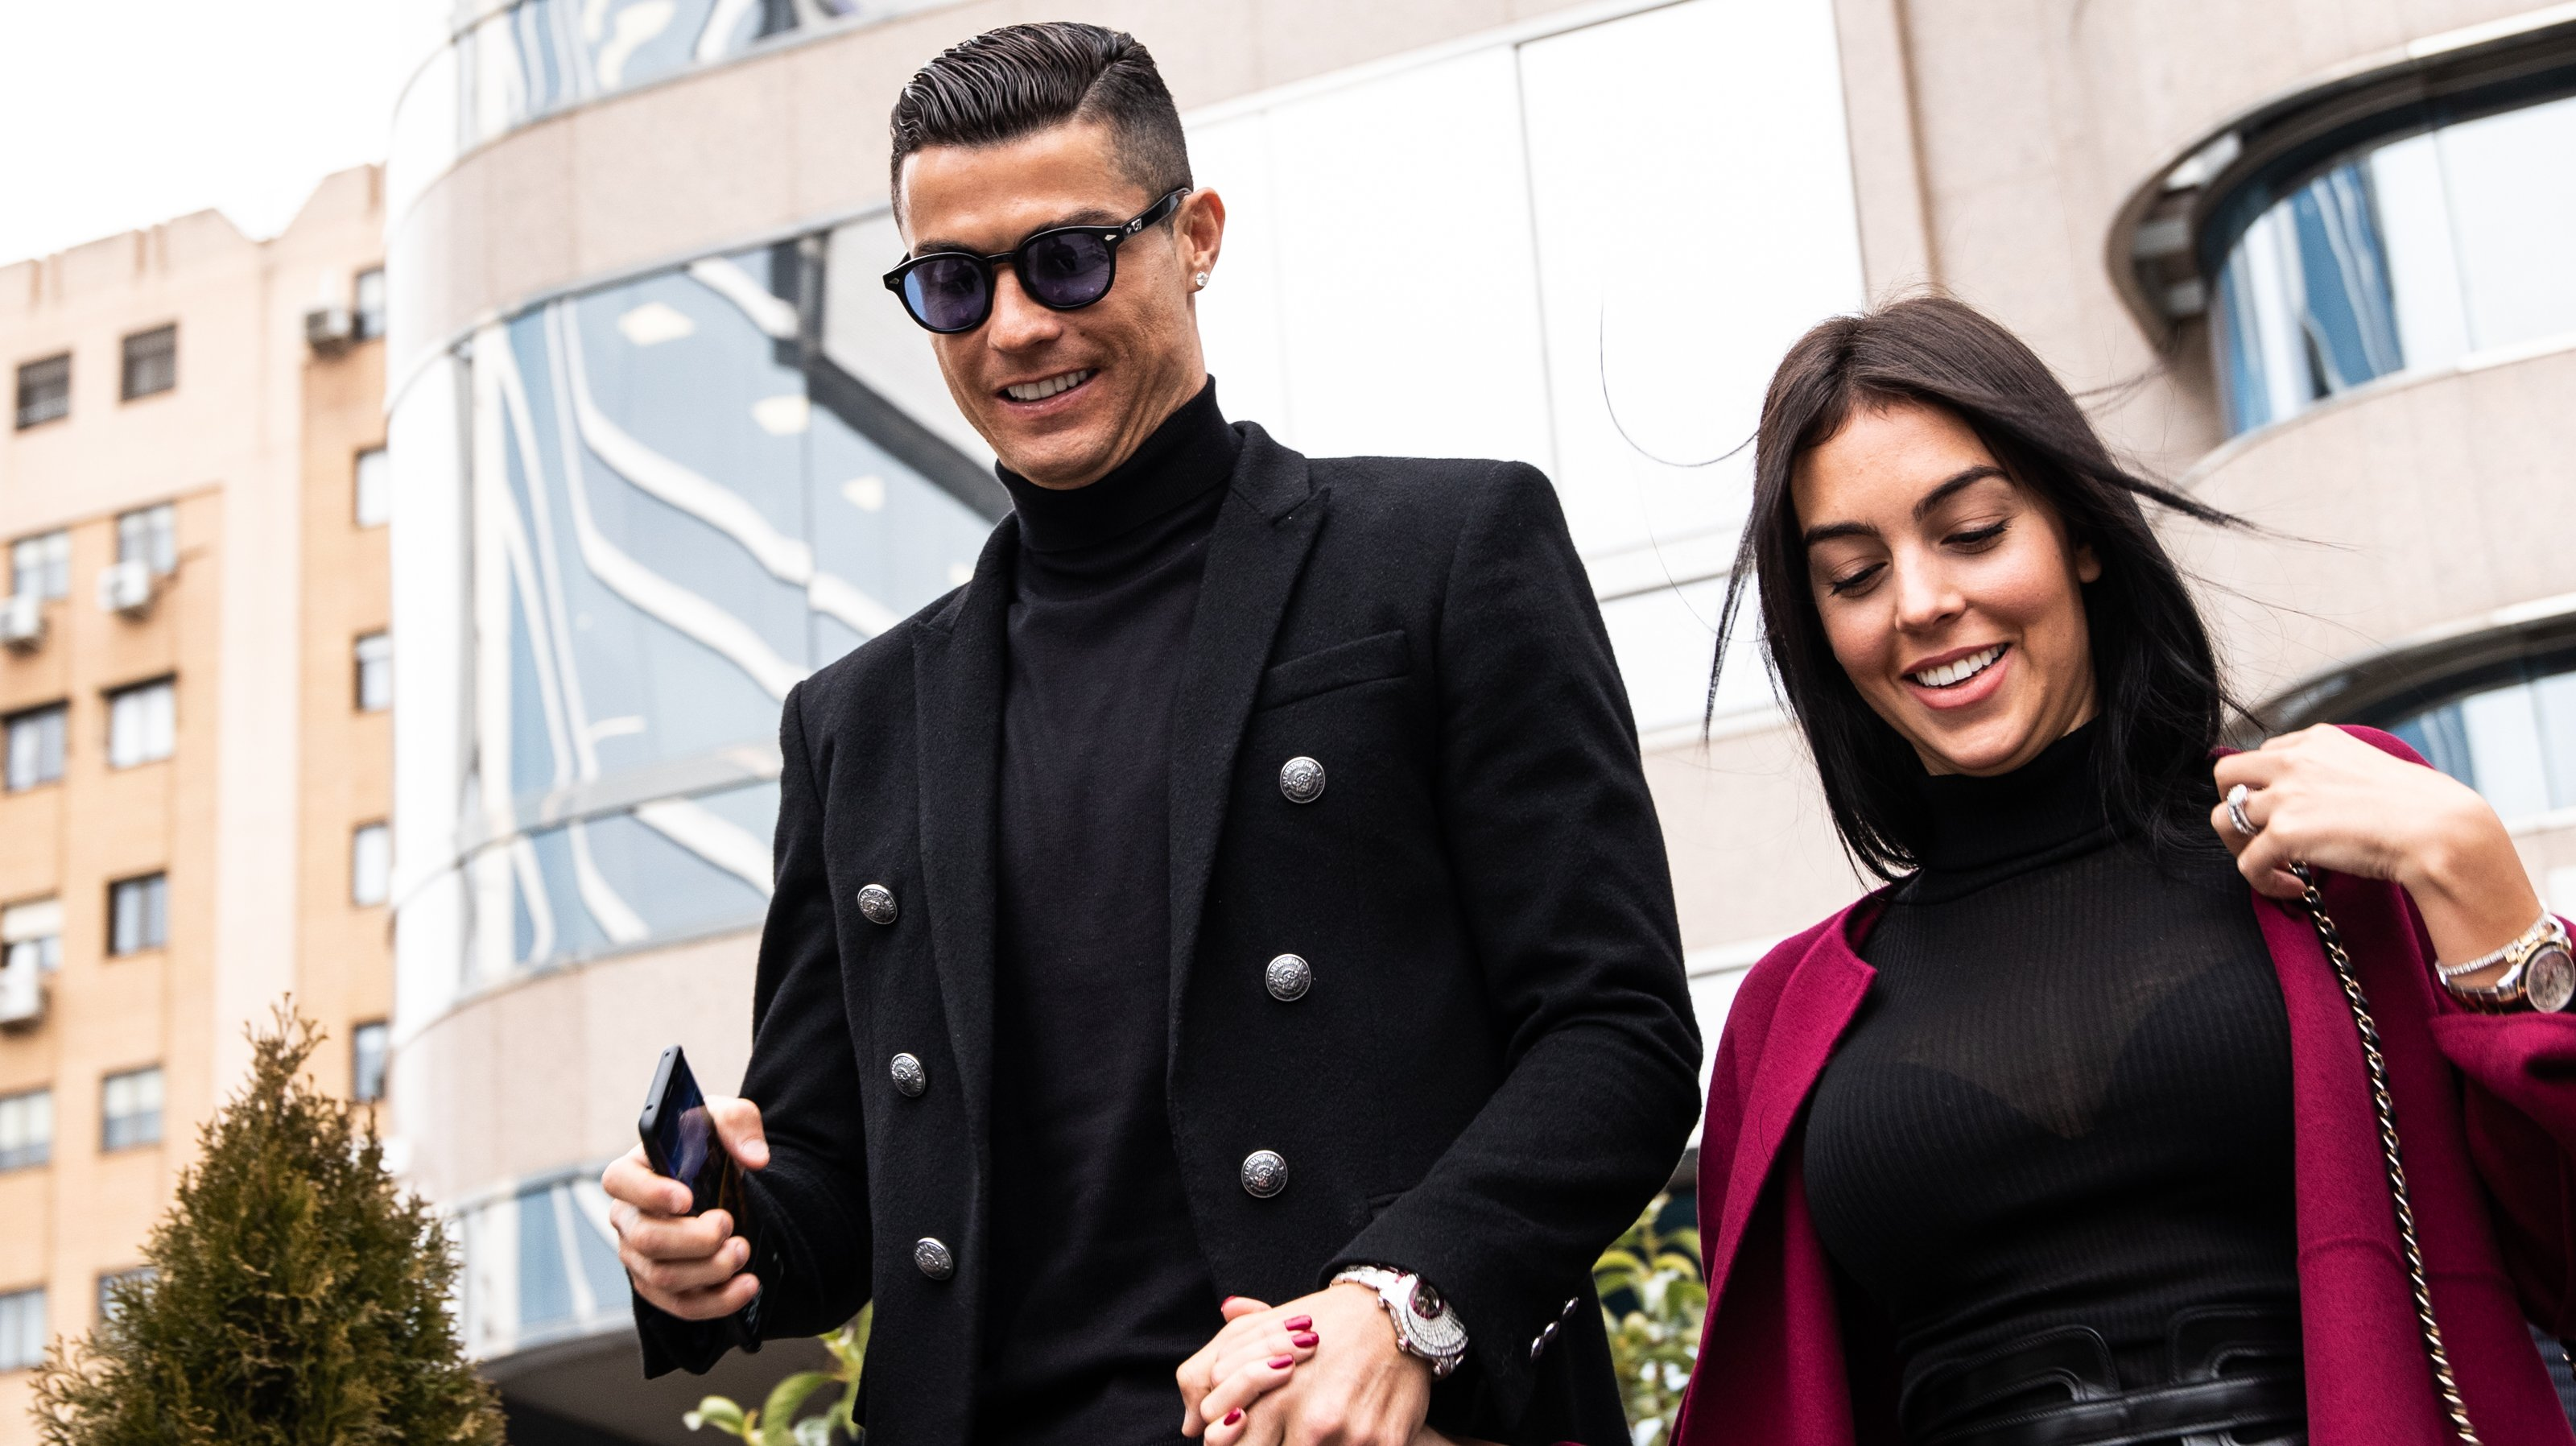 Portuguese soccer player Cristiano Ronaldo leaves from the